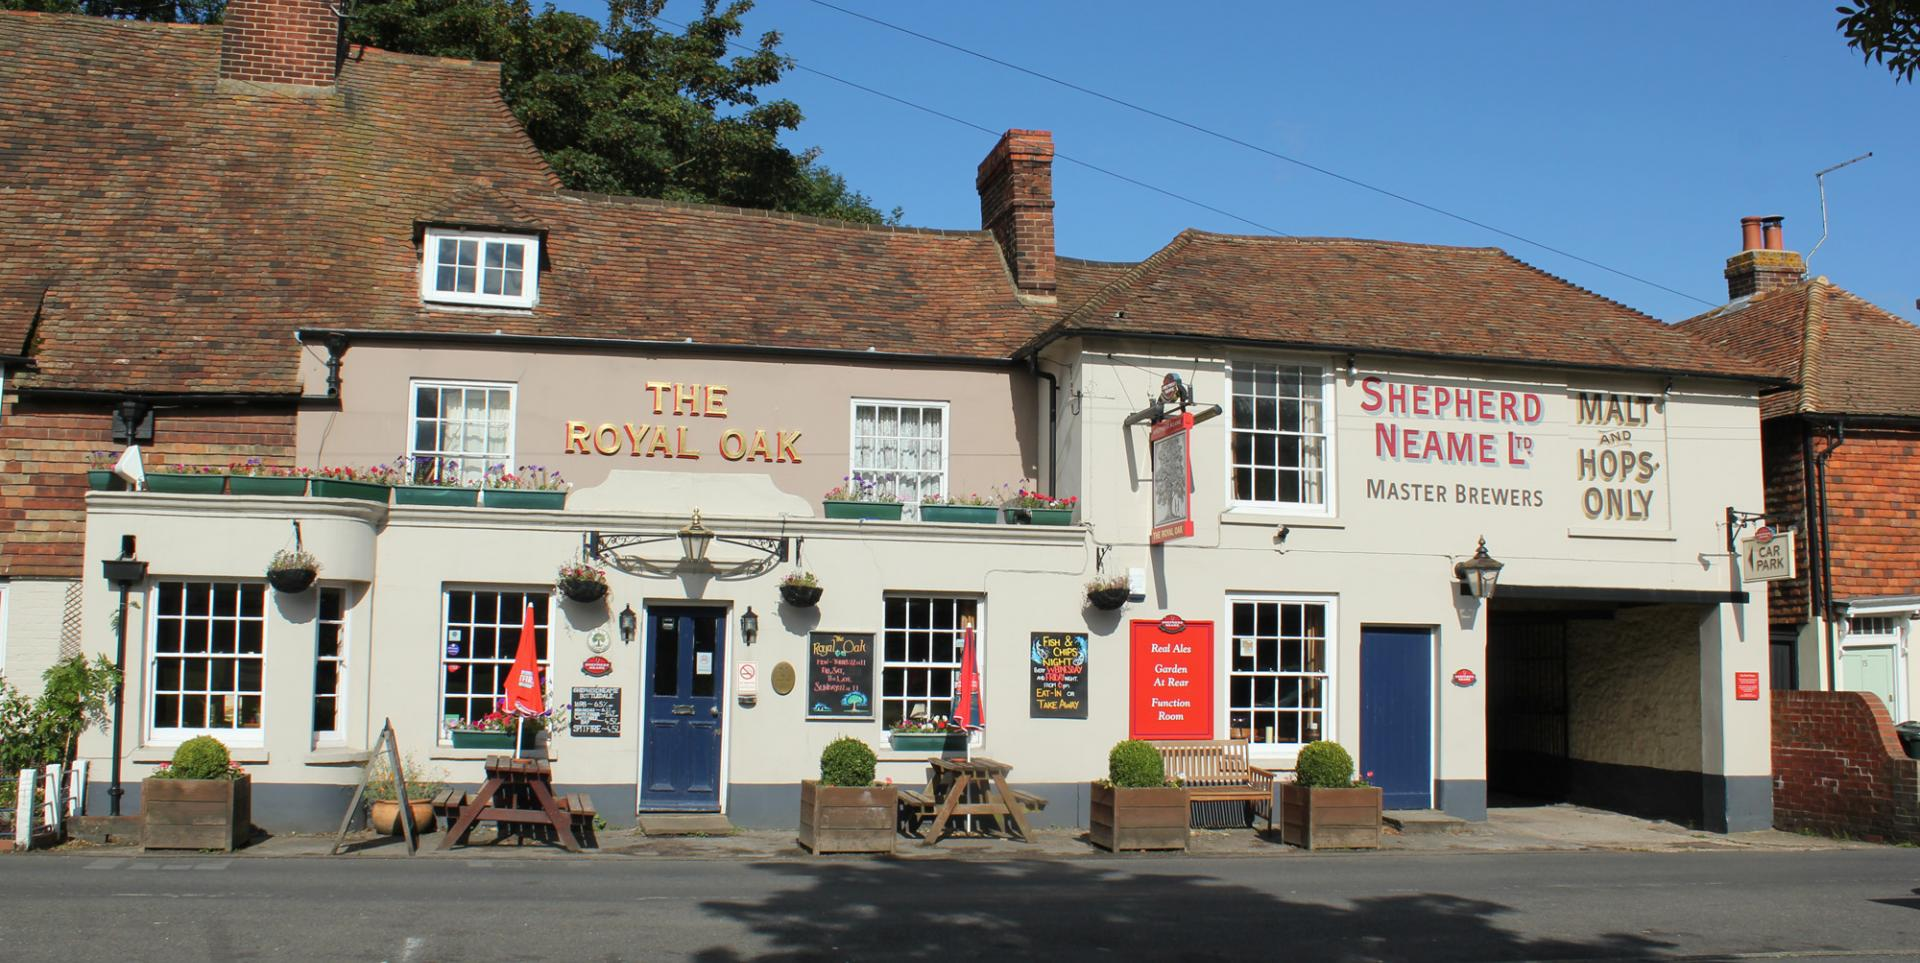 Royal Oak Mersham Ashford